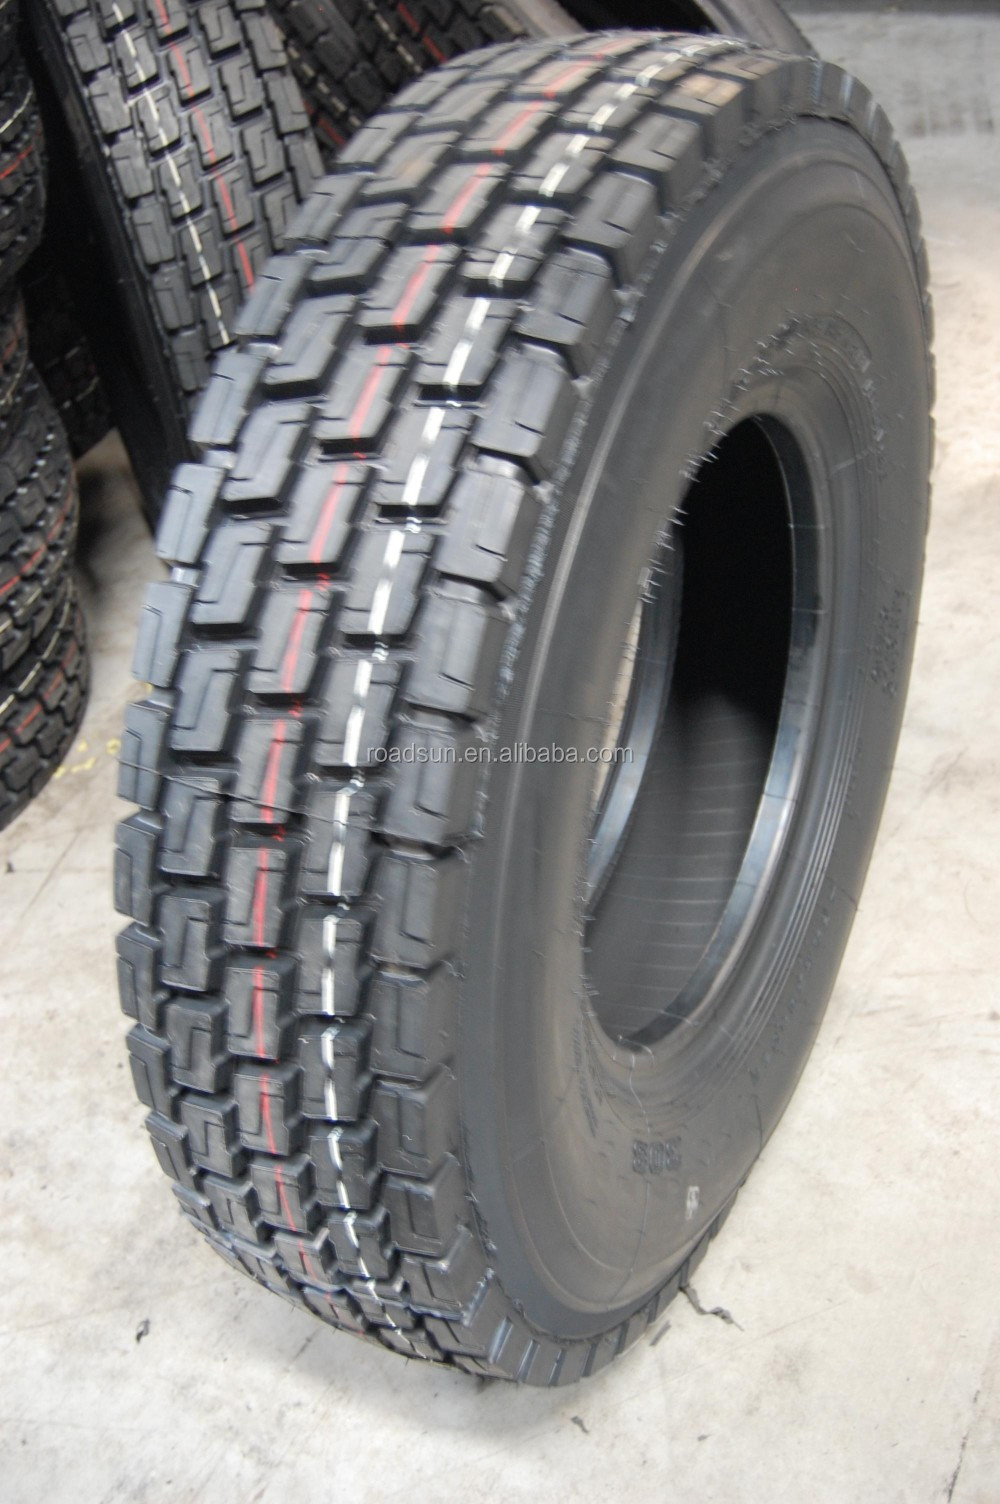 Michelin Mud And Snow Tires >> 285 70r19 5 Tires Pictures to Pin on Pinterest - PinsDaddy